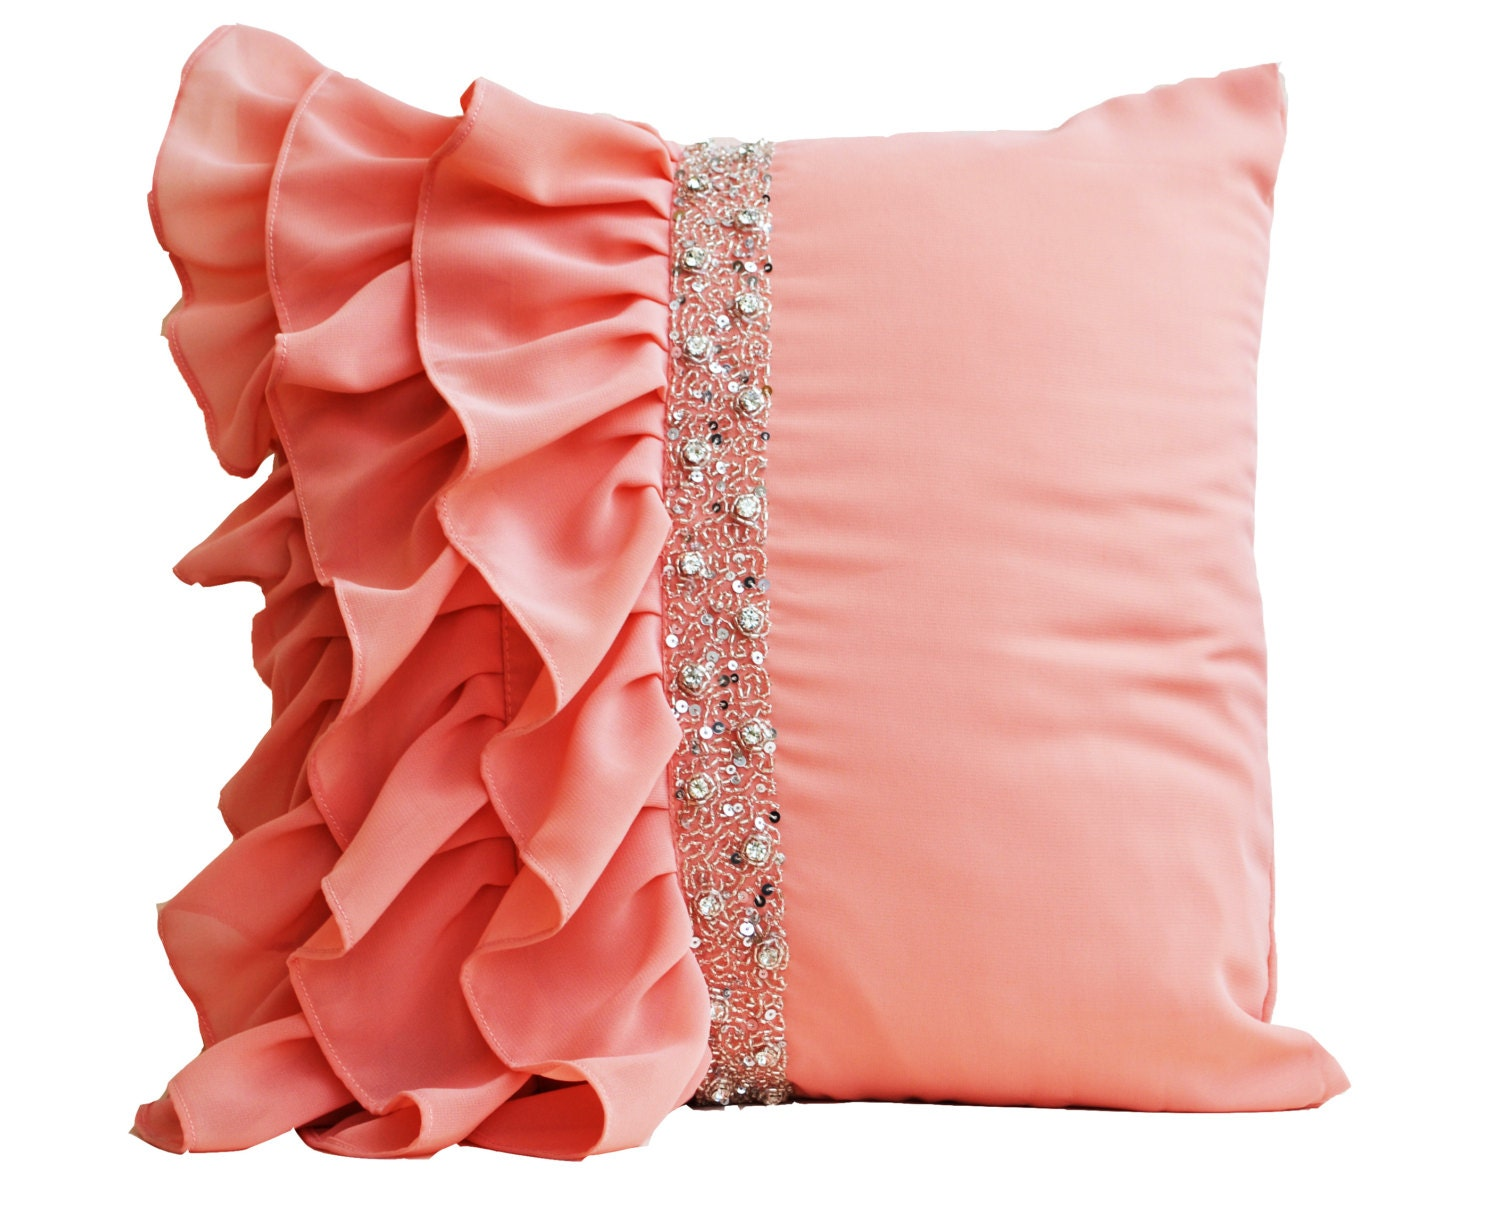 How To Make A Throw Pillow With Ruffle : Peach ruffled throw pillow cover Ruffle pillow Decorative